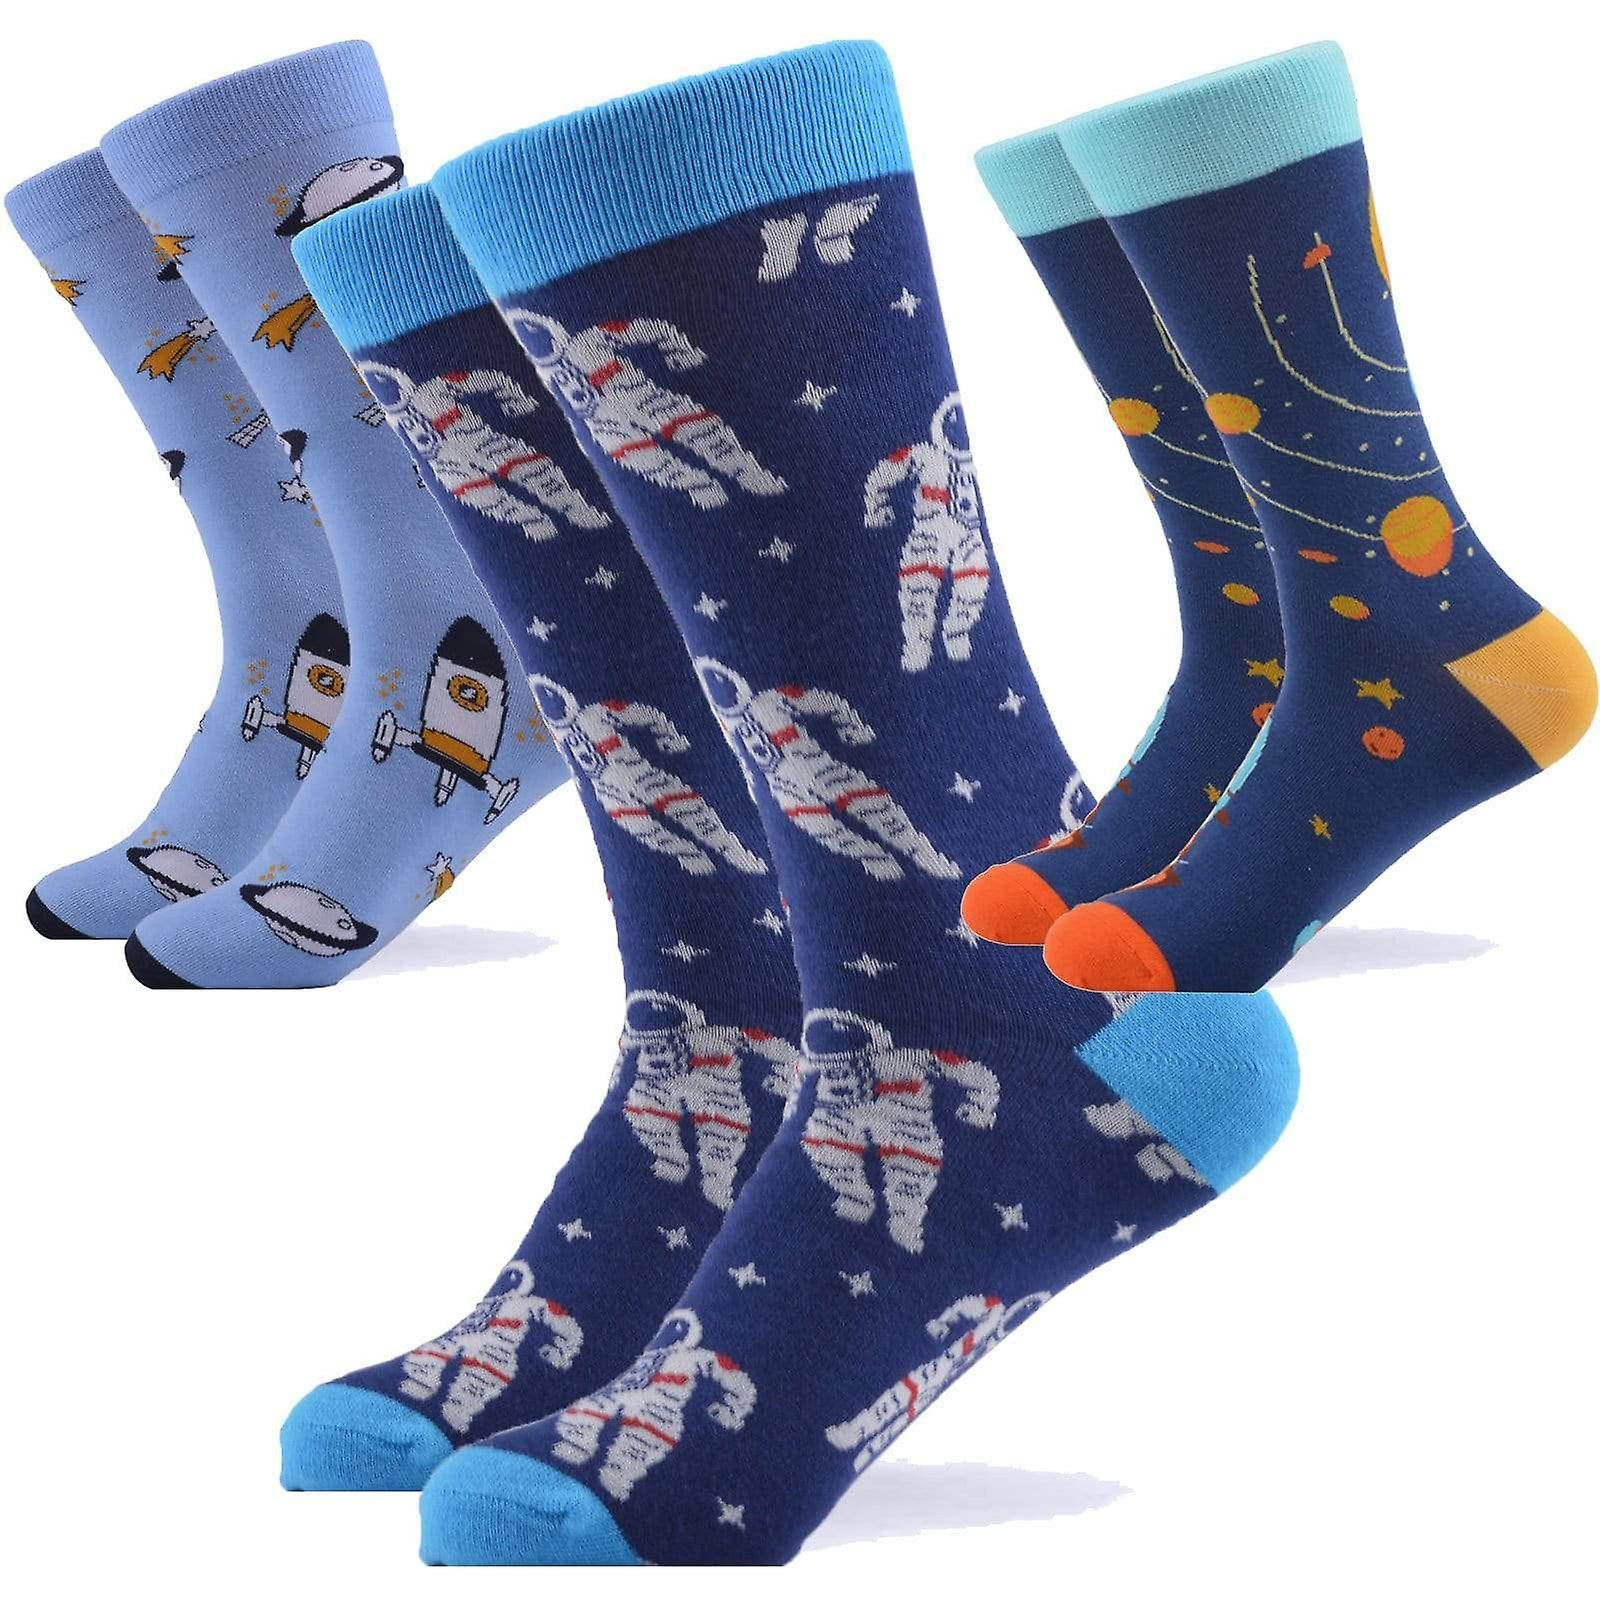 Rocket man space theme box 3 pairs of socks